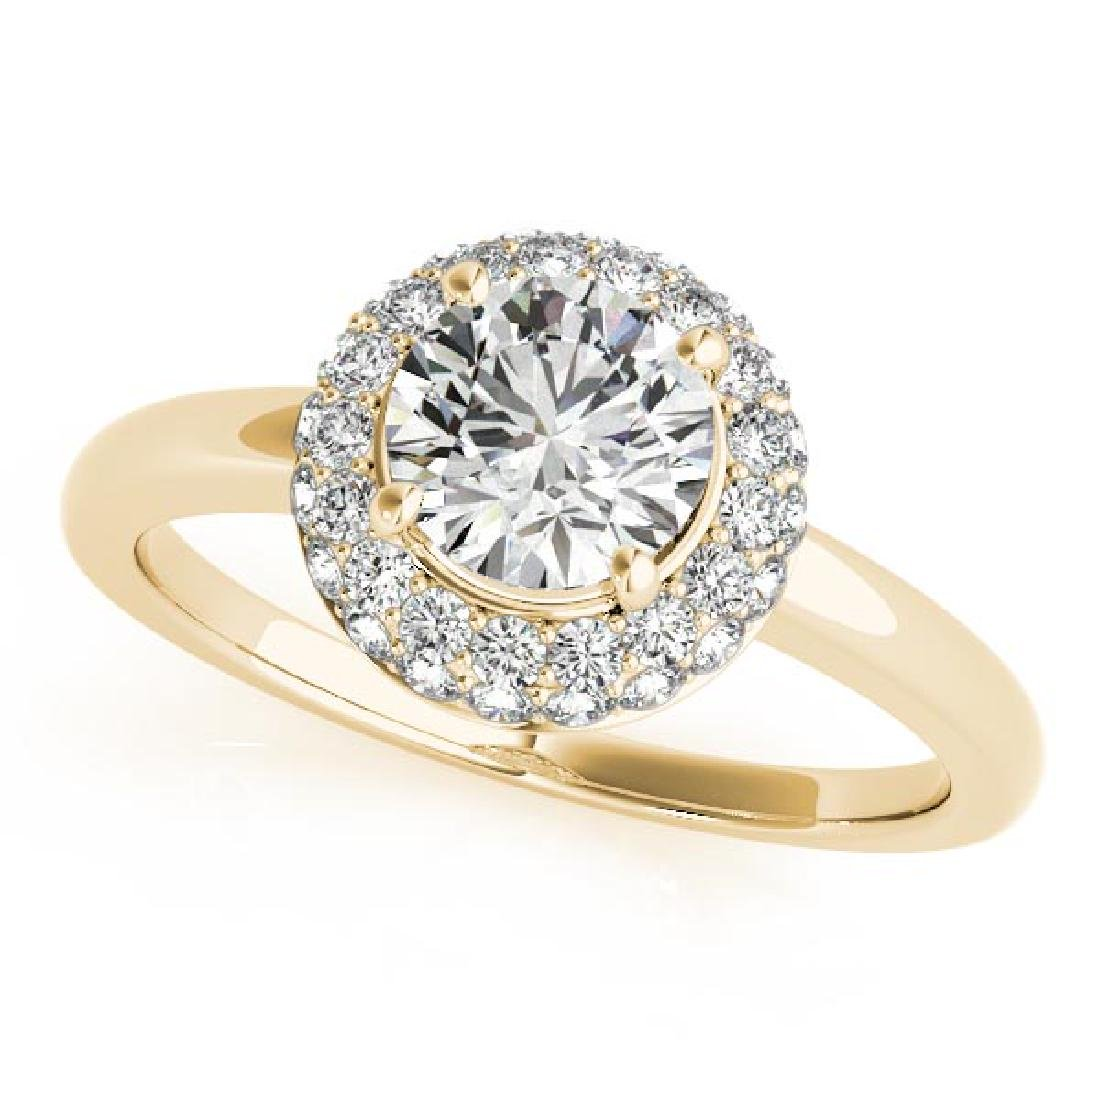 CERTIFIED 18K YELLOW GOLD 1.45 CT G-H/VS-SI1 DIAMOND HA